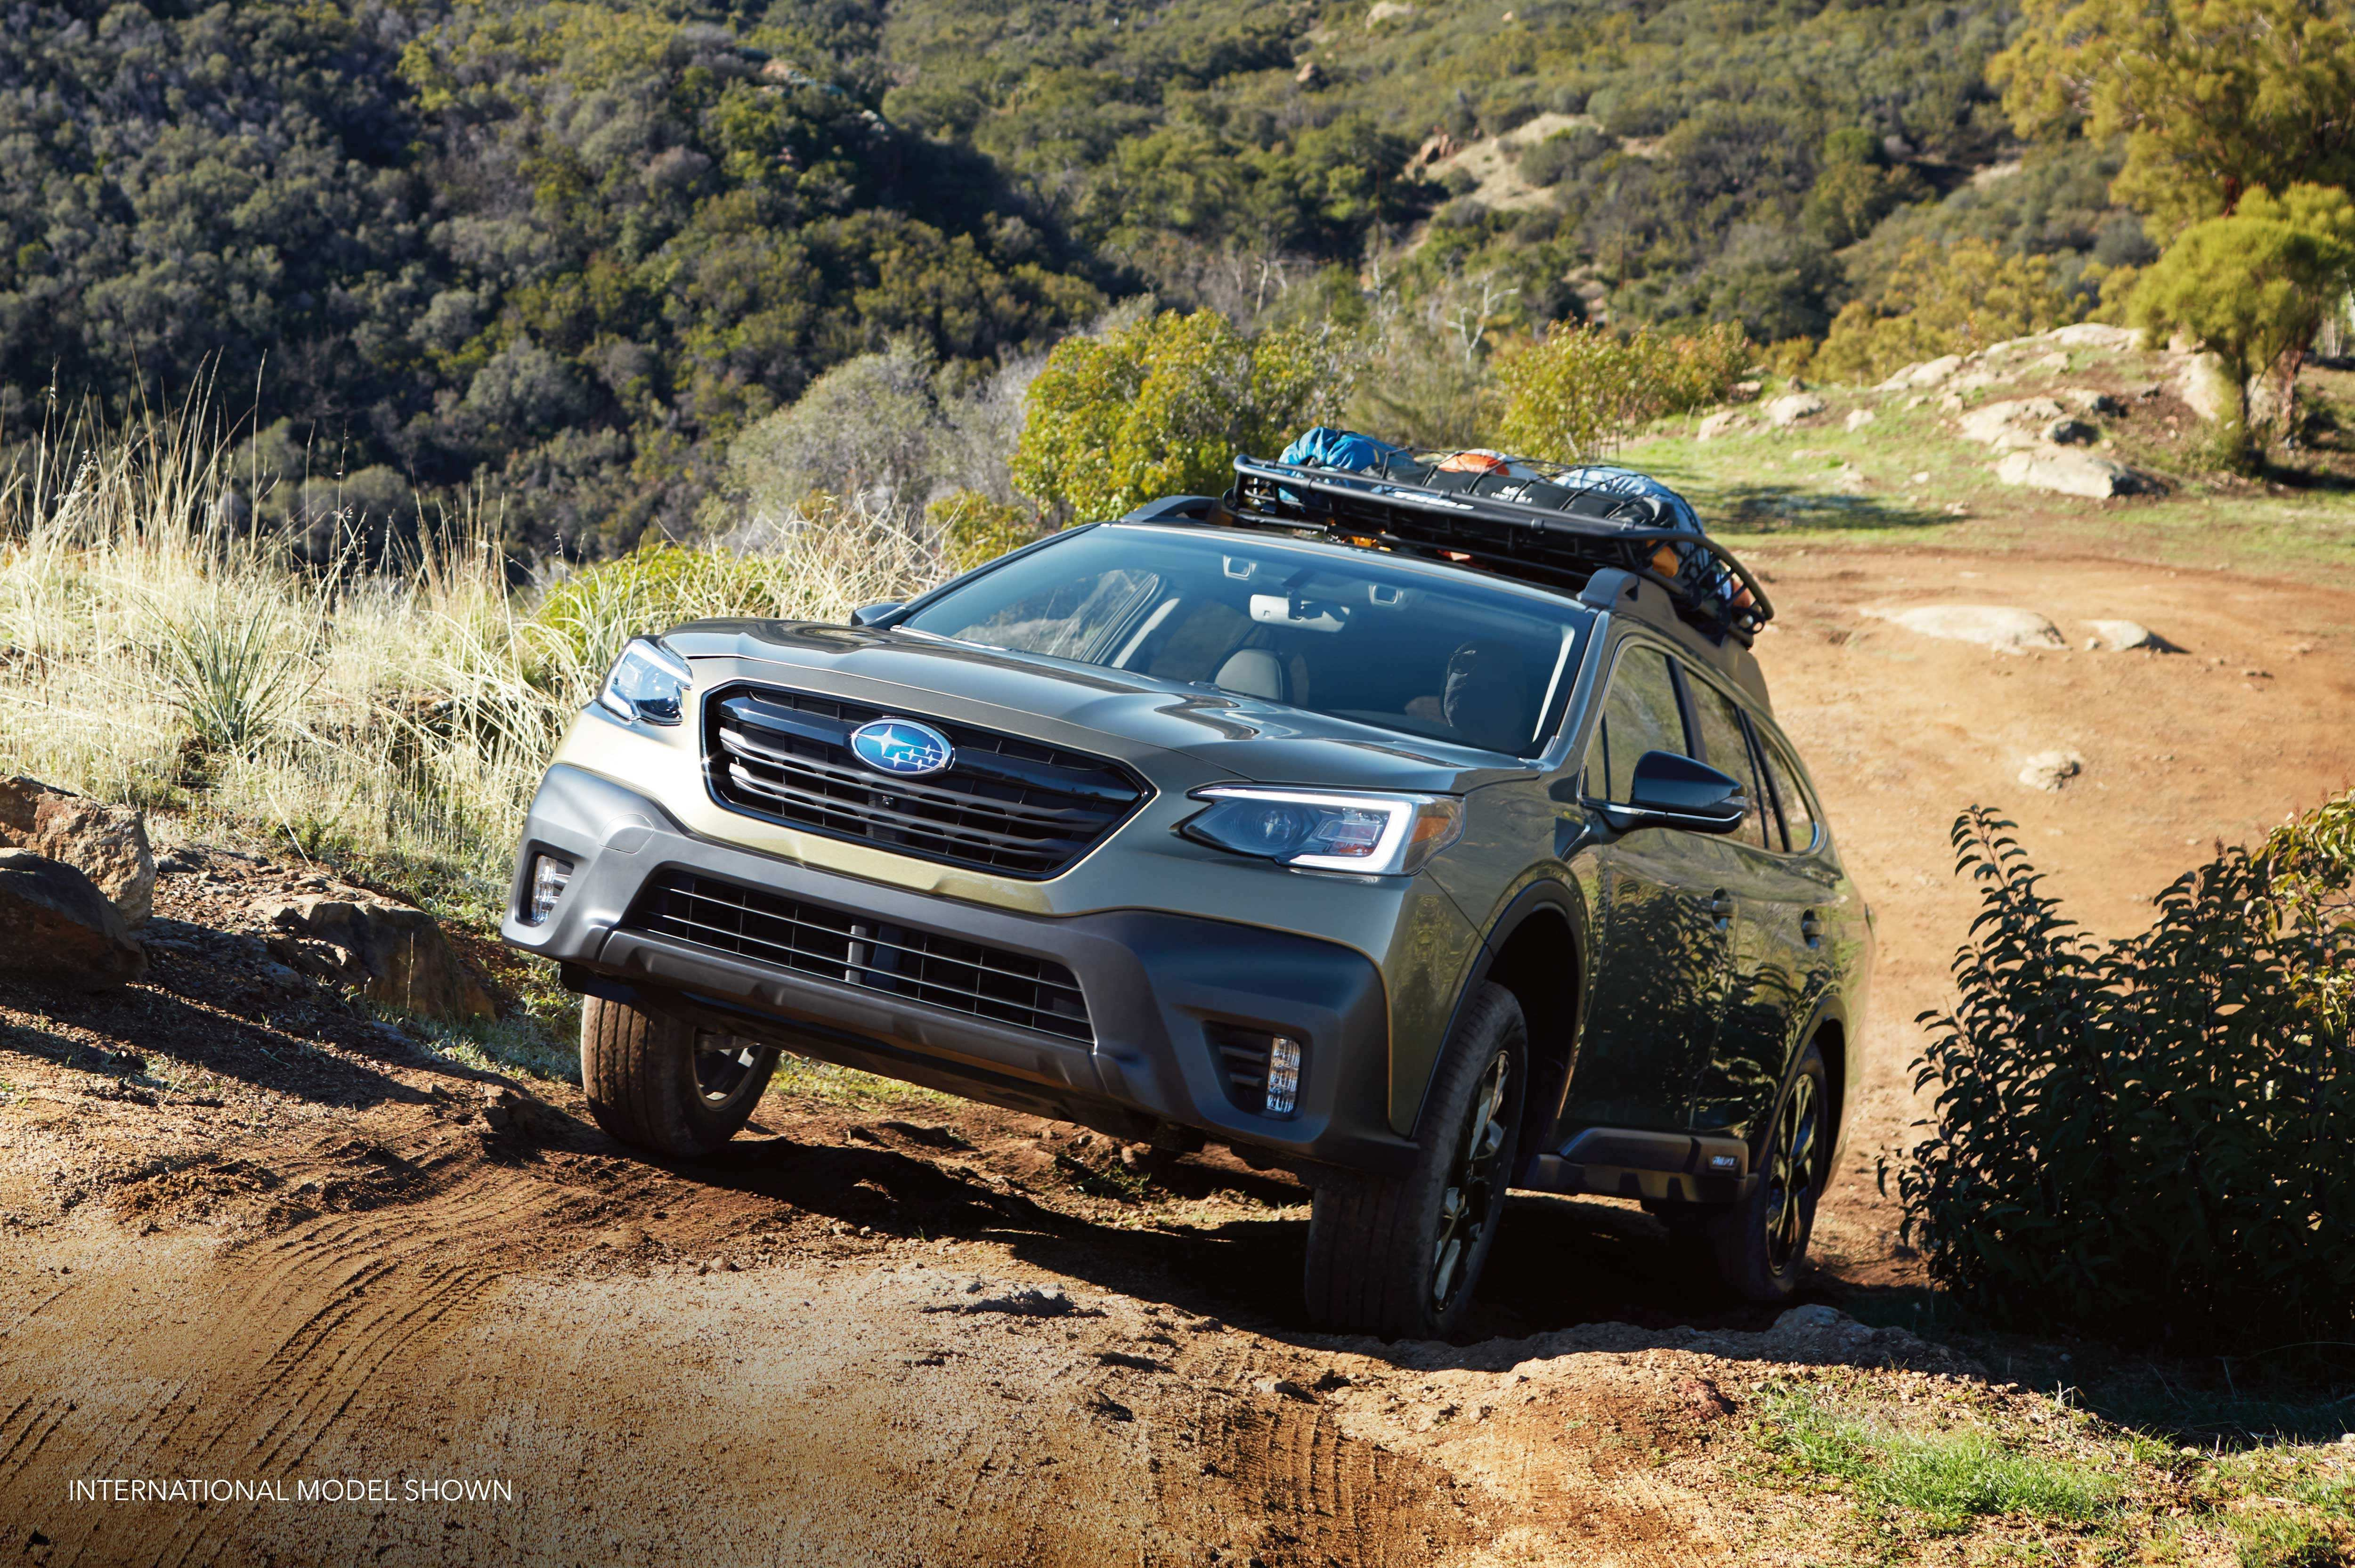 83 New Subaru Plans For 2020 Spy Shoot with Subaru Plans For 2020